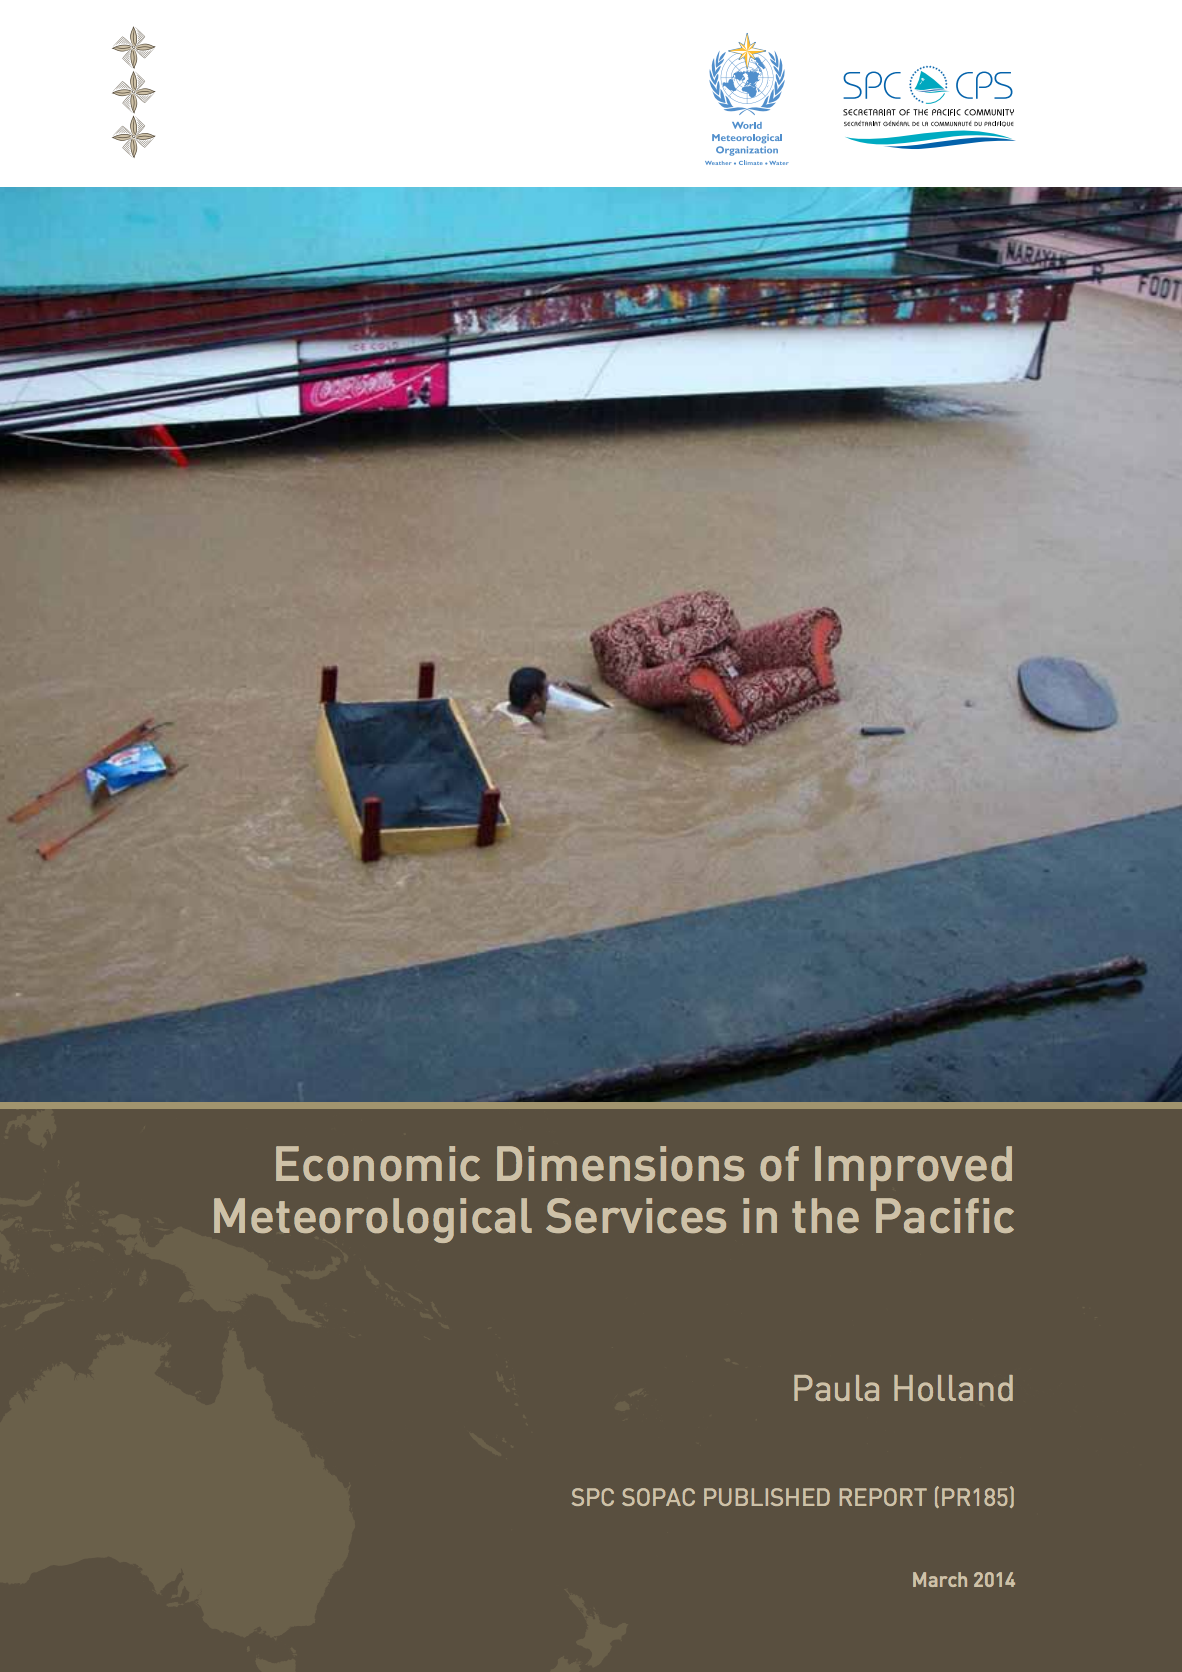 Economic Dimensions of Improved Meteorological Services in the Pacific